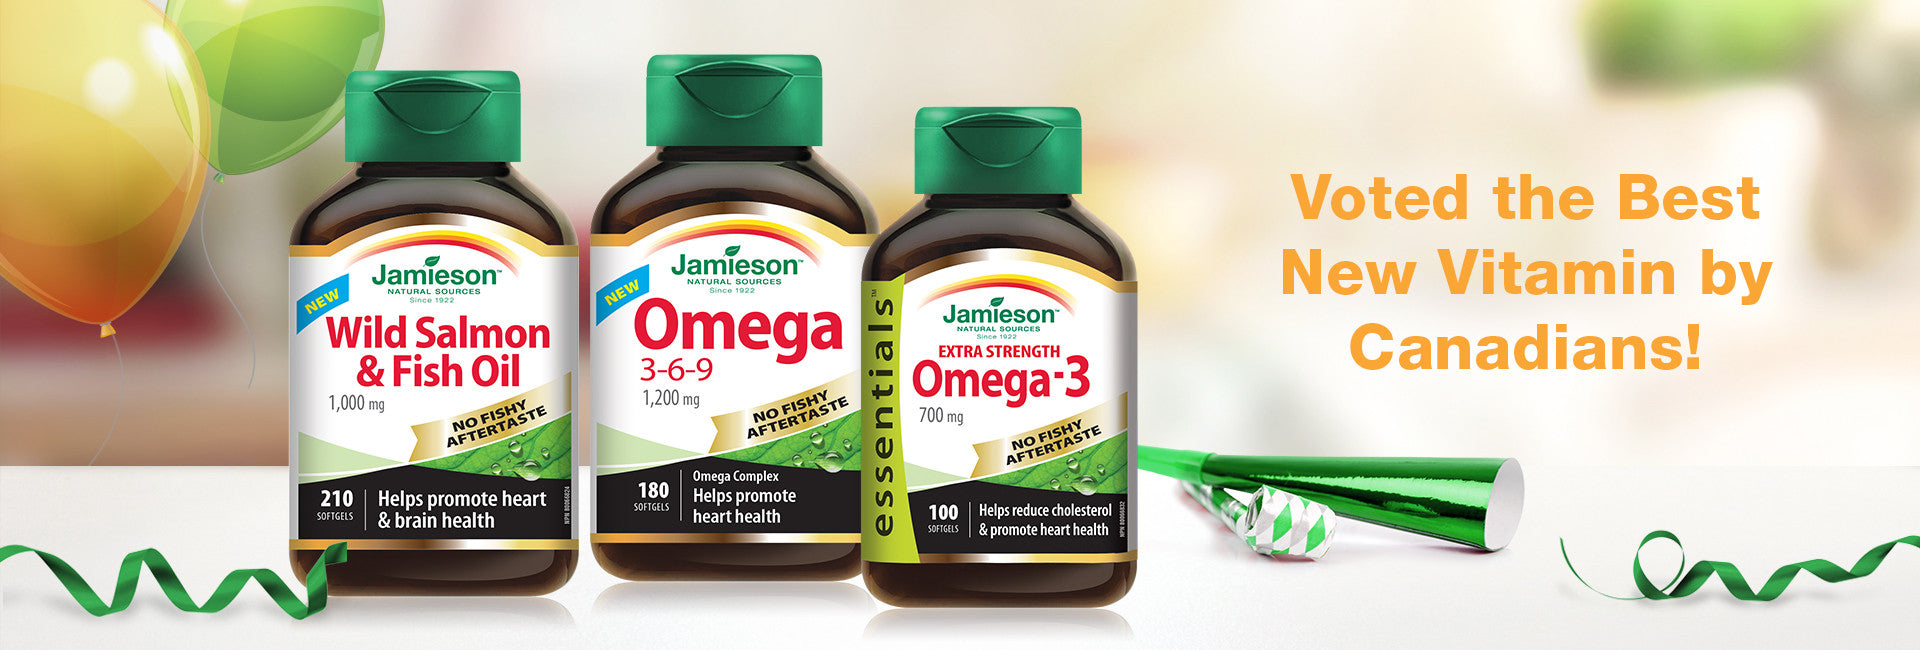 Jamieson Omega-3s take home Best New Product Award